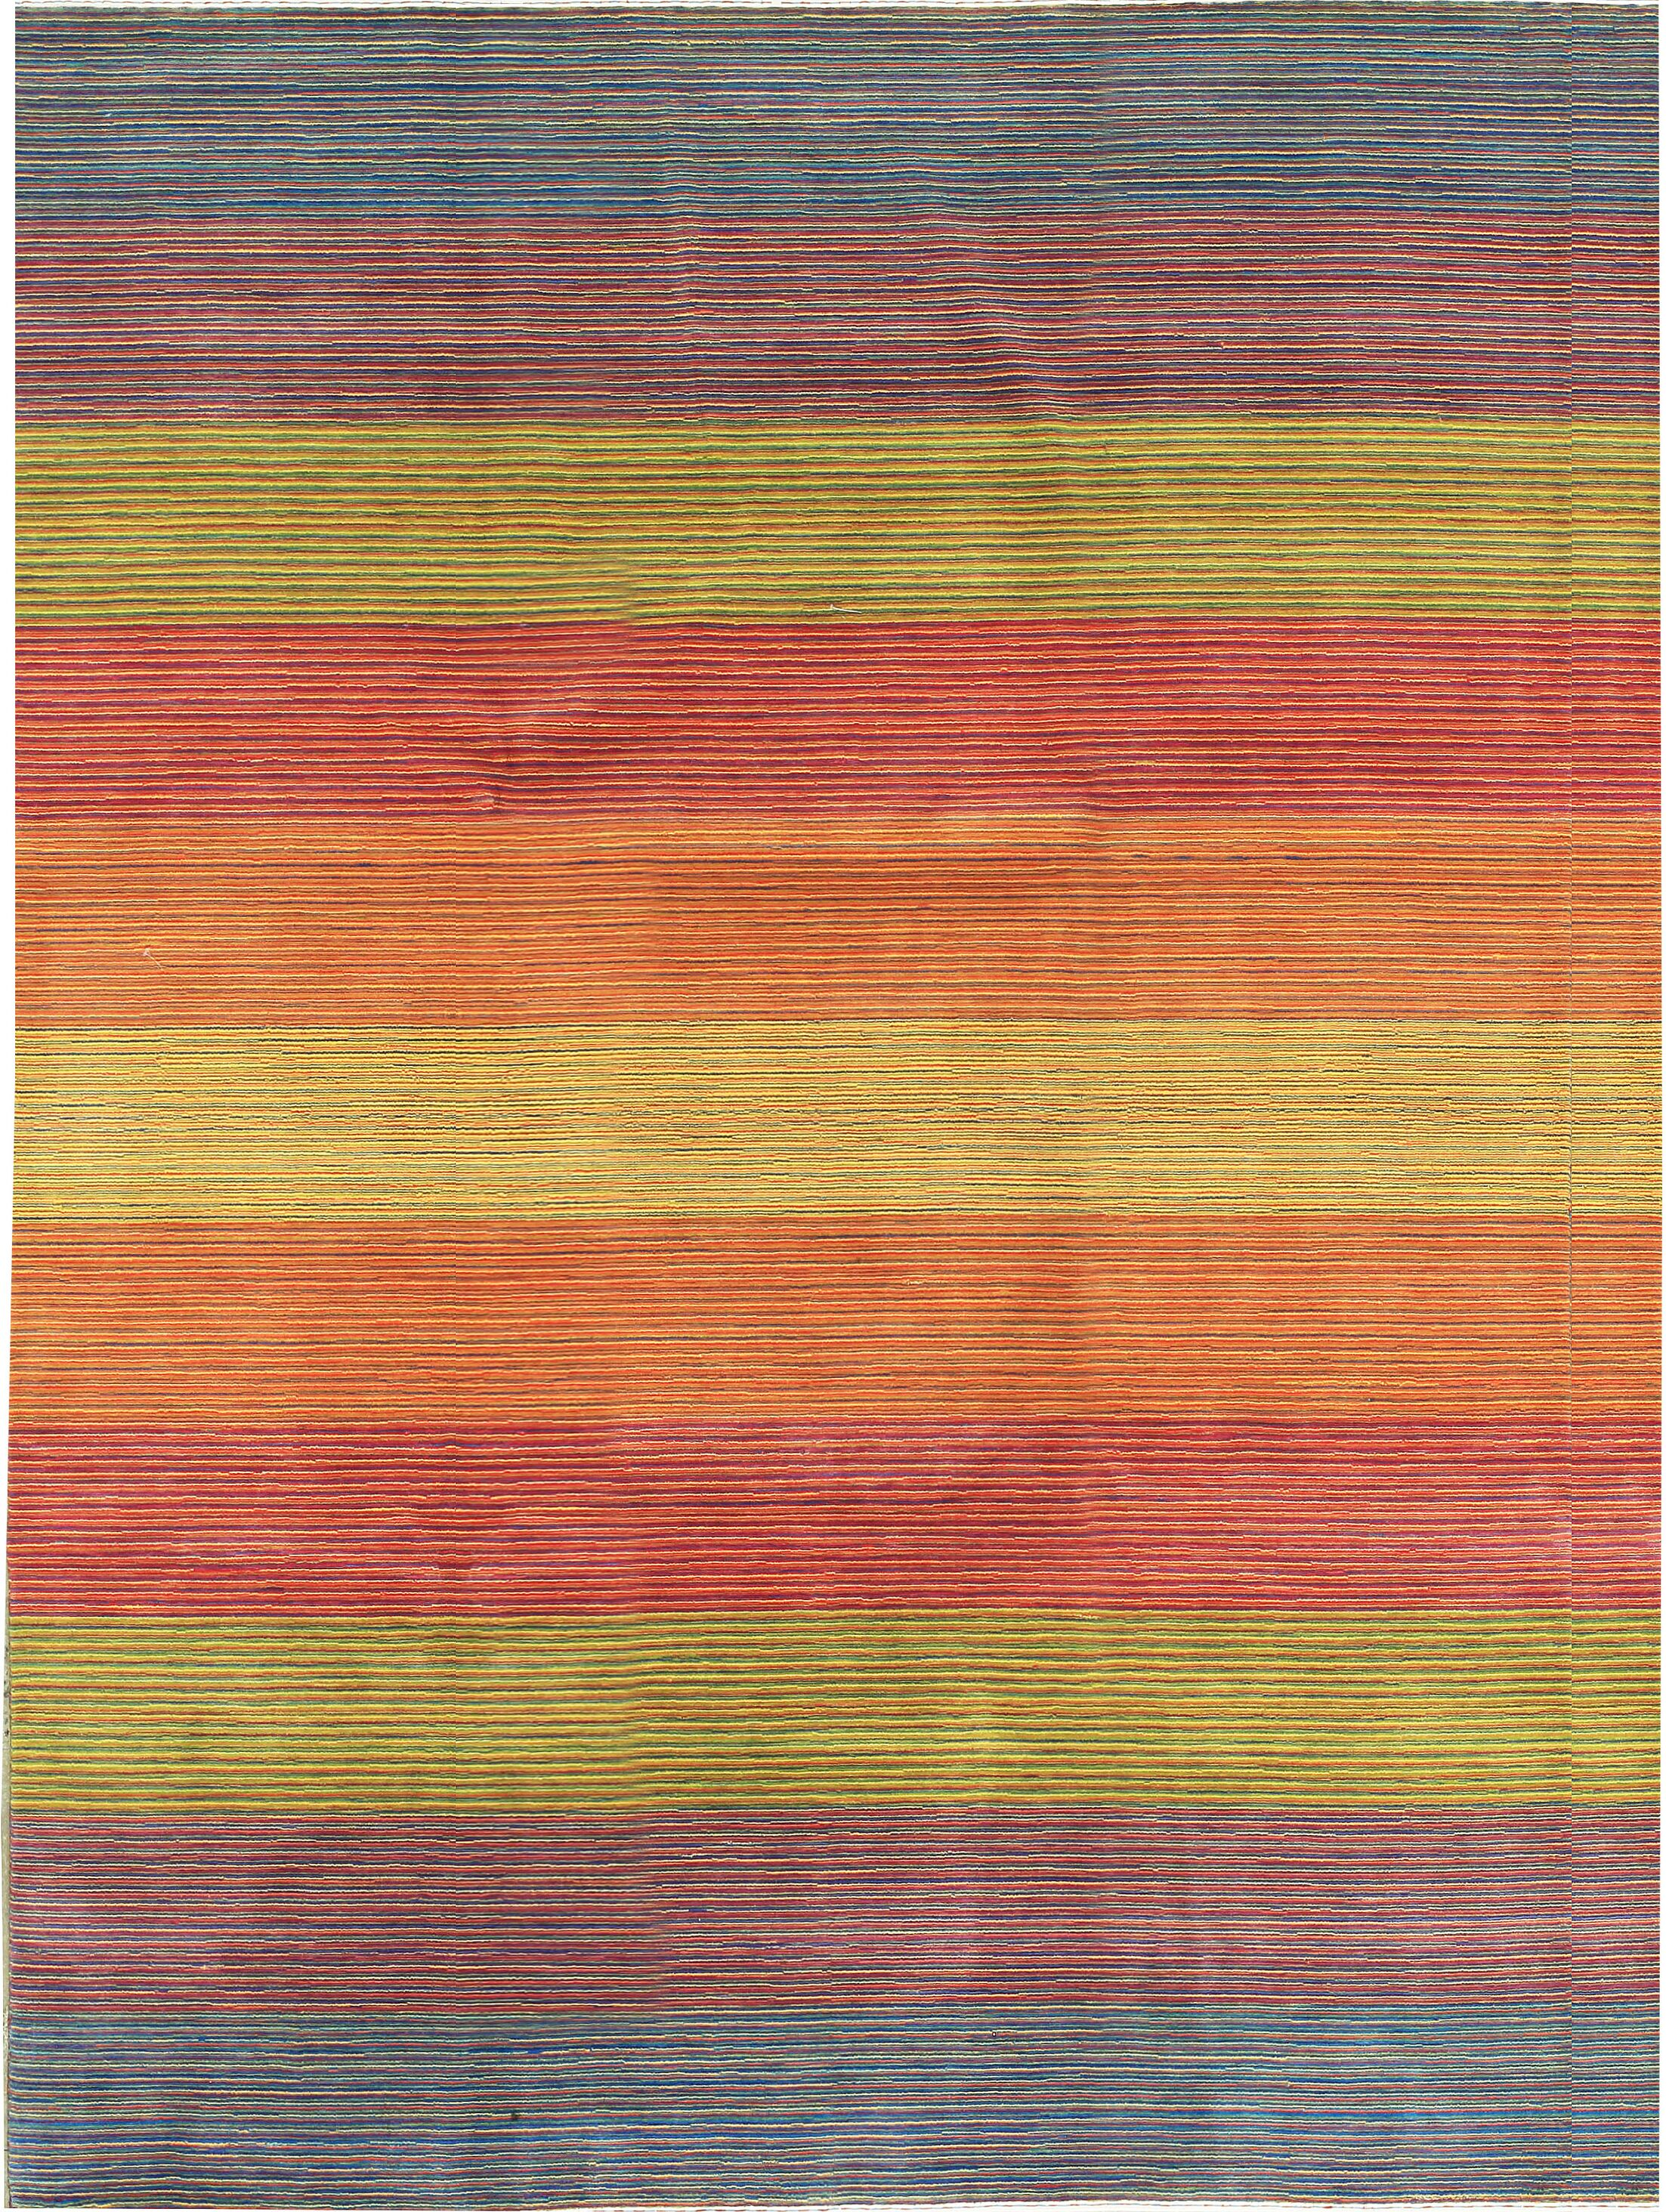 One-of-a-Kind Gabbeh Hand-Knotted Wool Orange/Yellow Area Rug